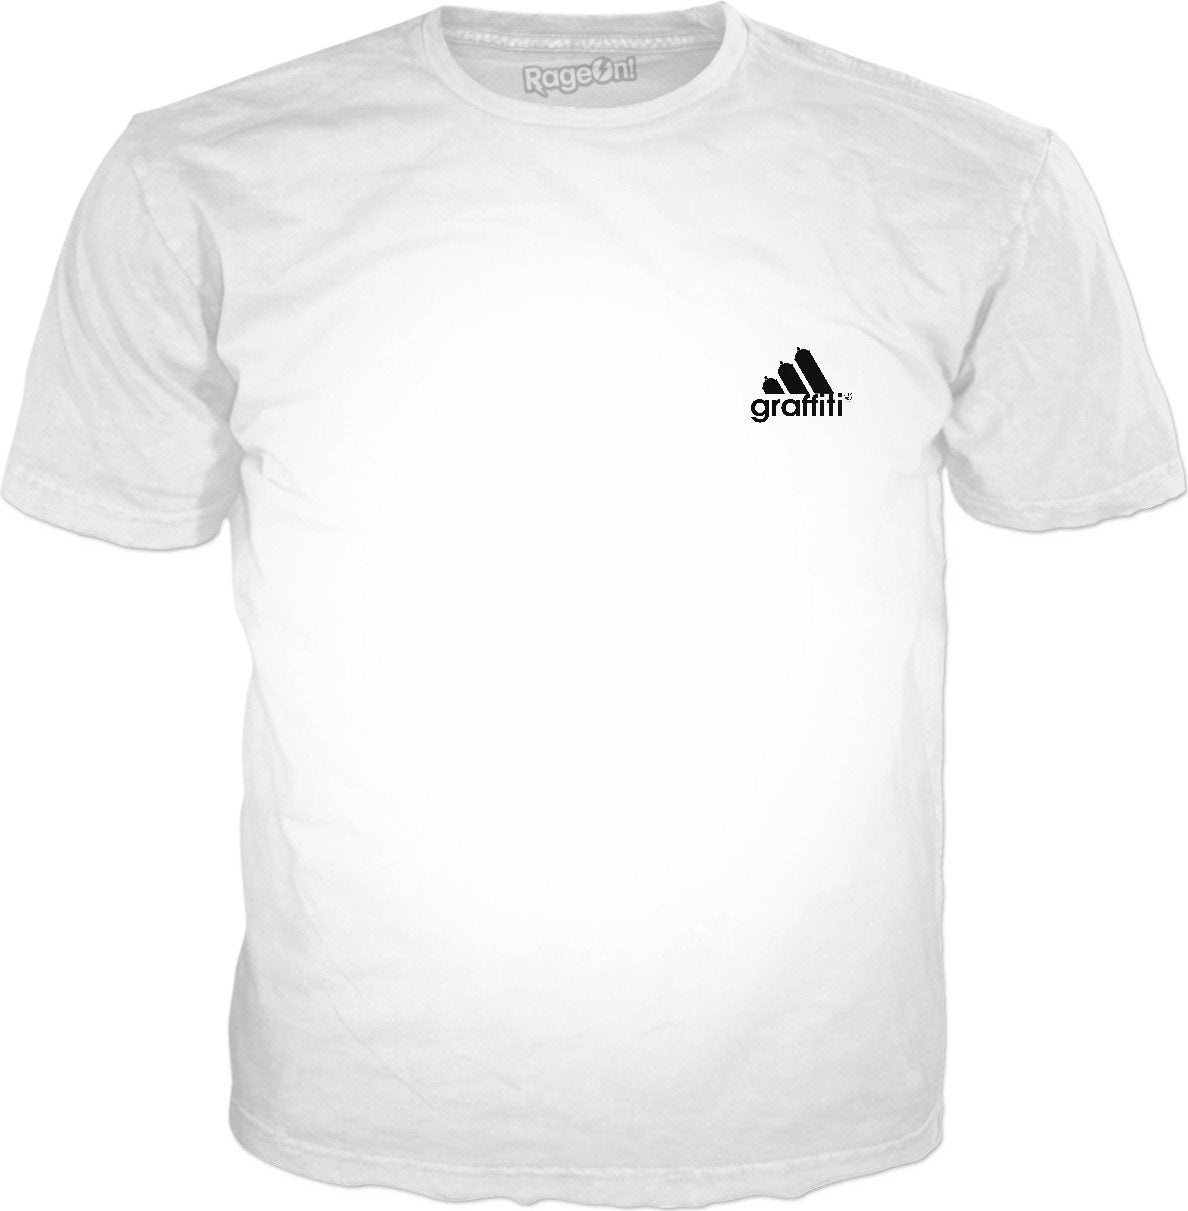 NEW! adidas graffiti parody T-Shirt